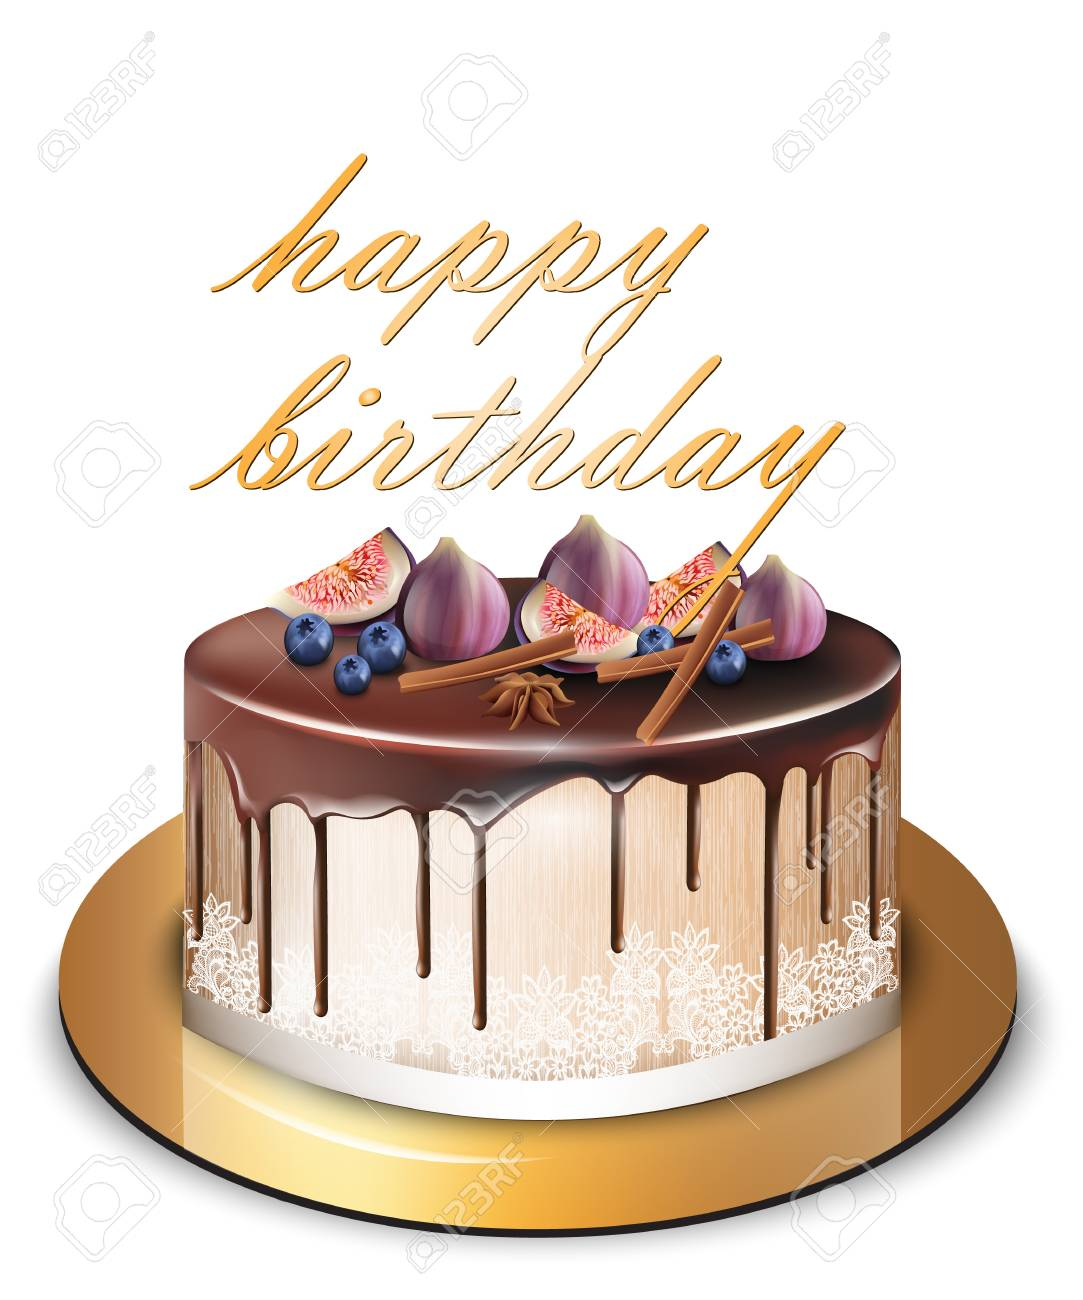 Happy Birthday Cake With Fig Fruits Vector Delicious Dessert Sweet Design Stock